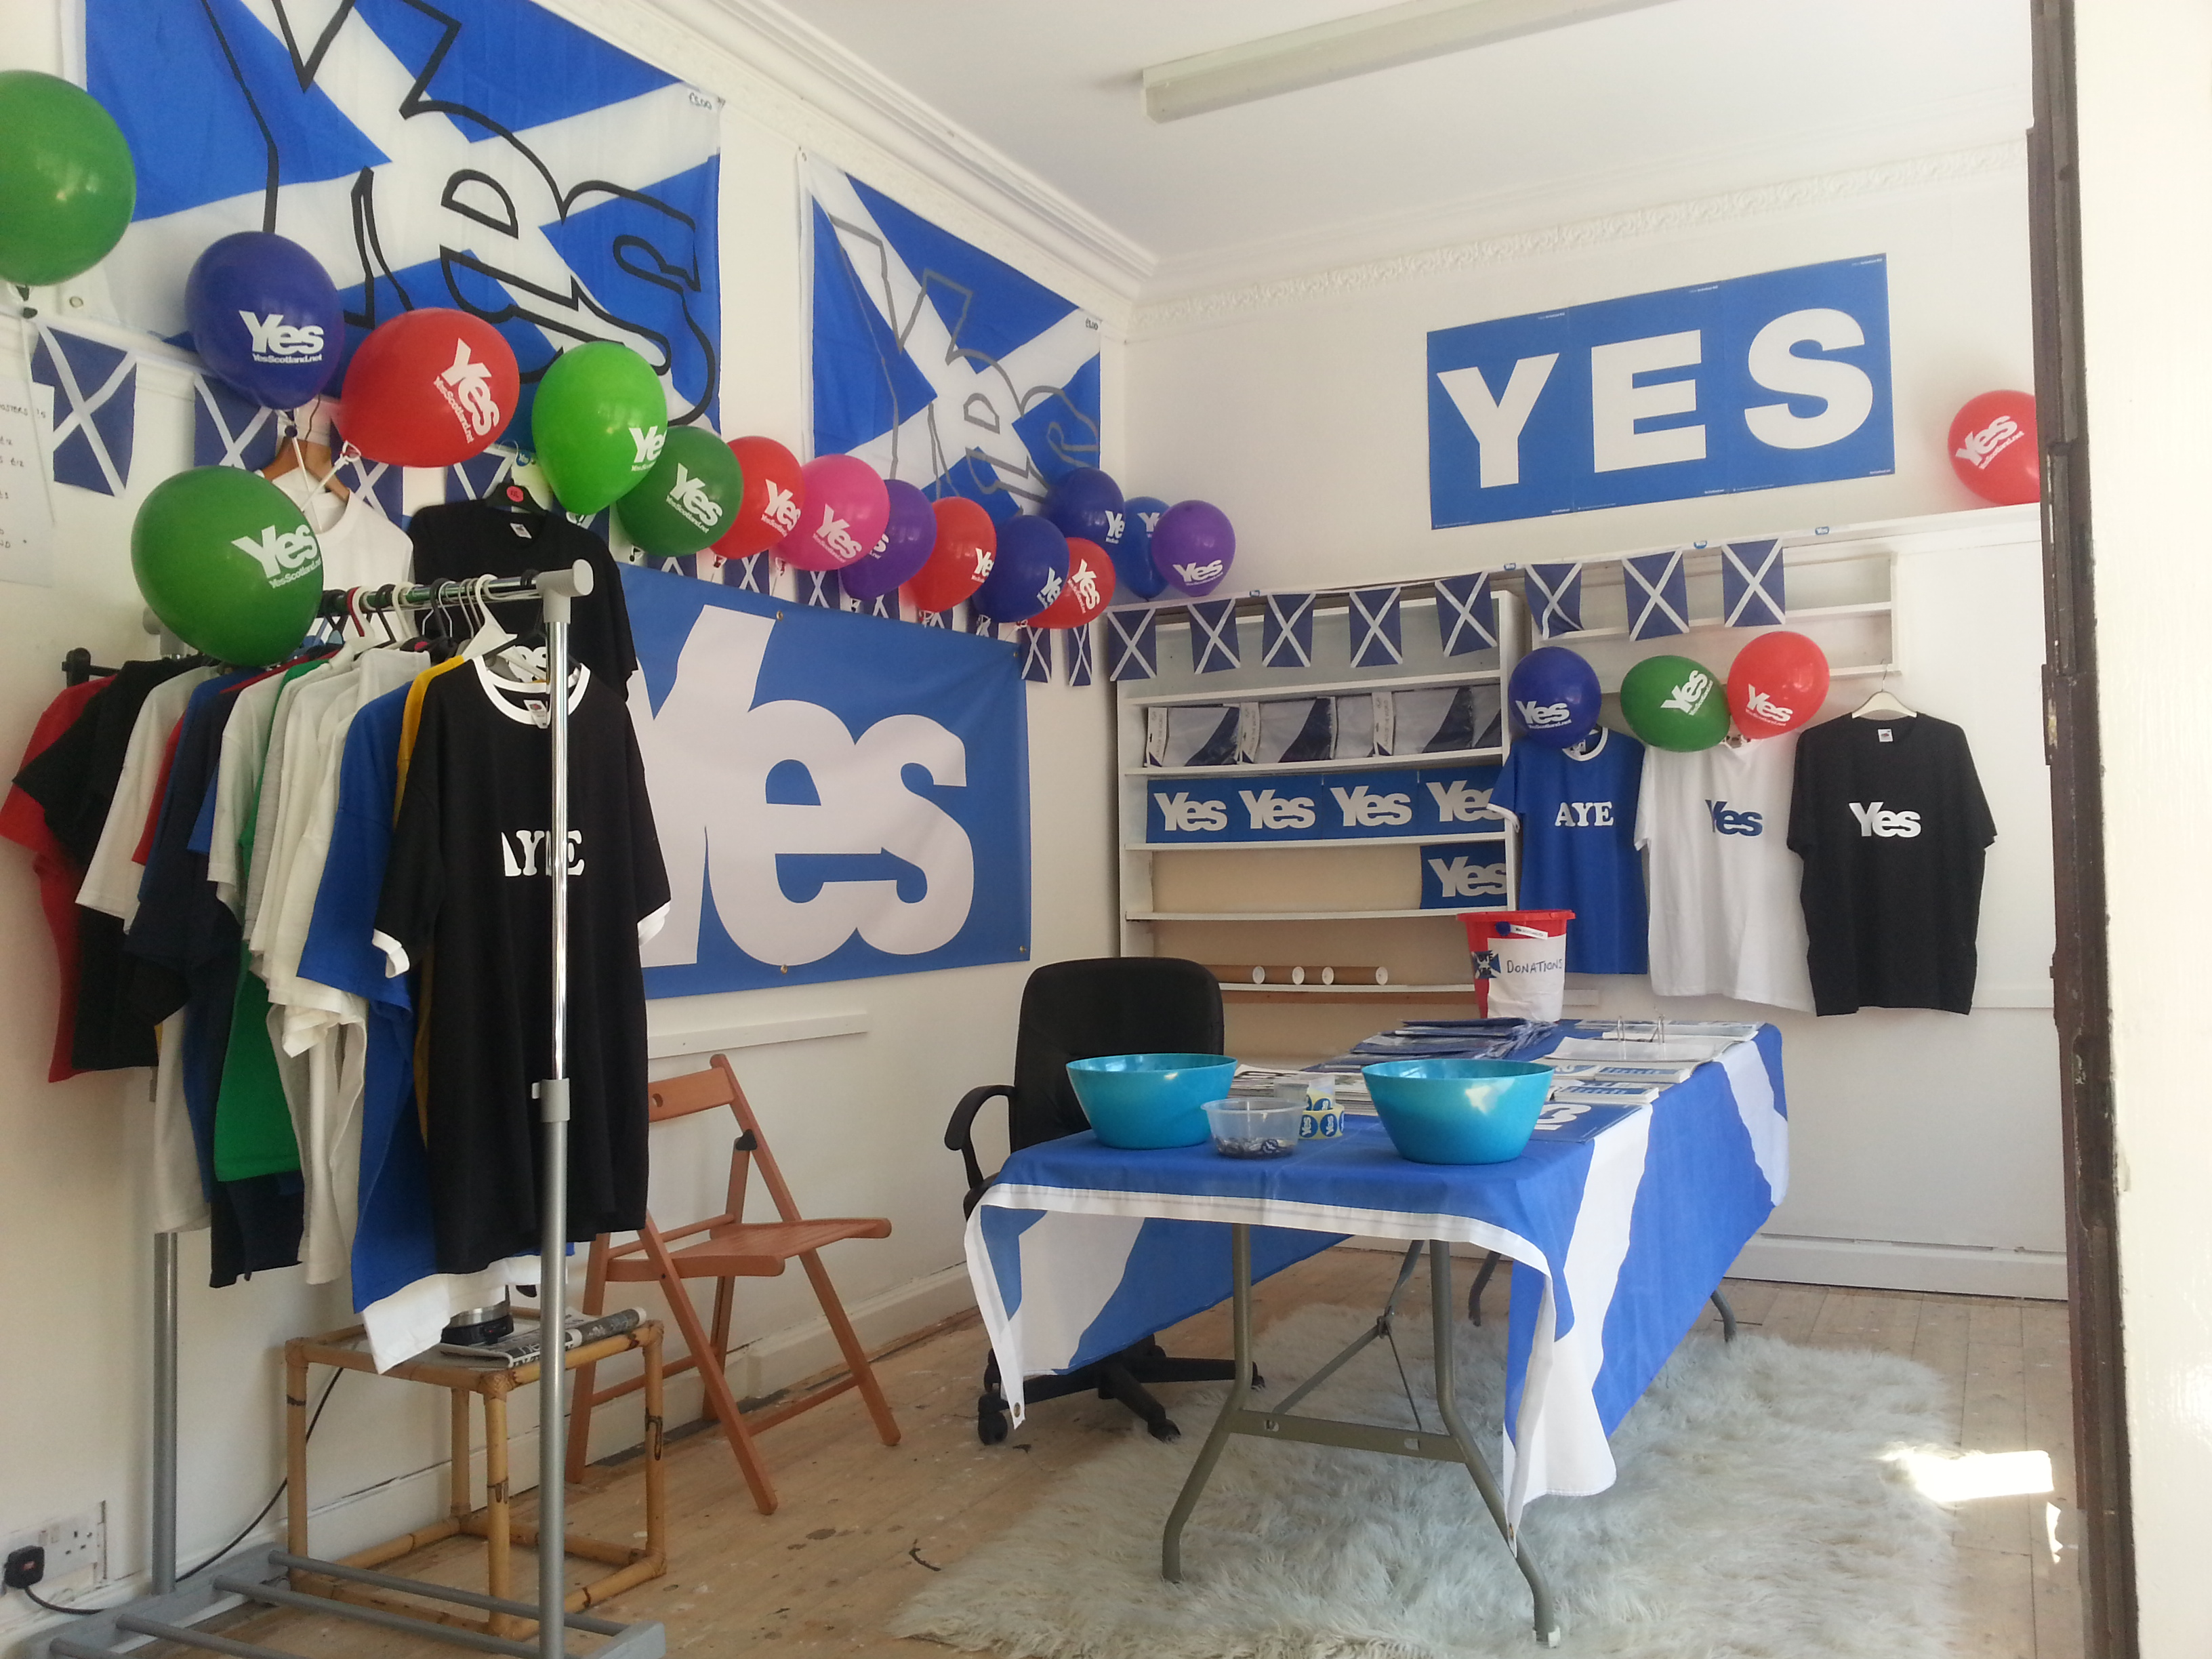 Yes shop, Burntisland